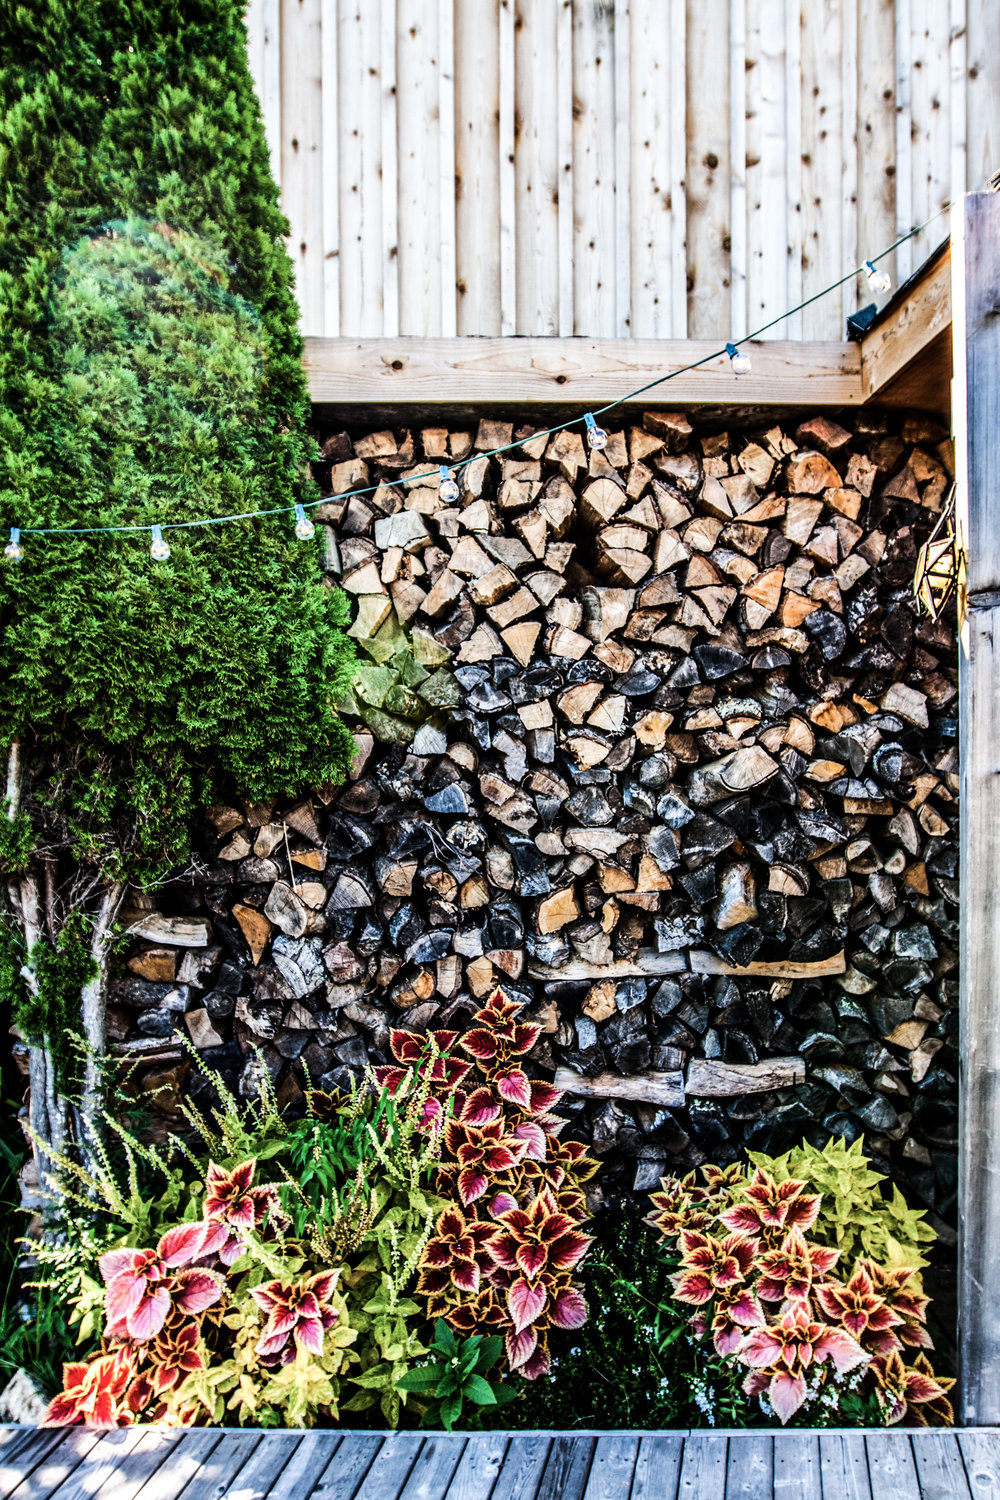 Hotel and restaurant surf shack fire logs in Montauk, New York